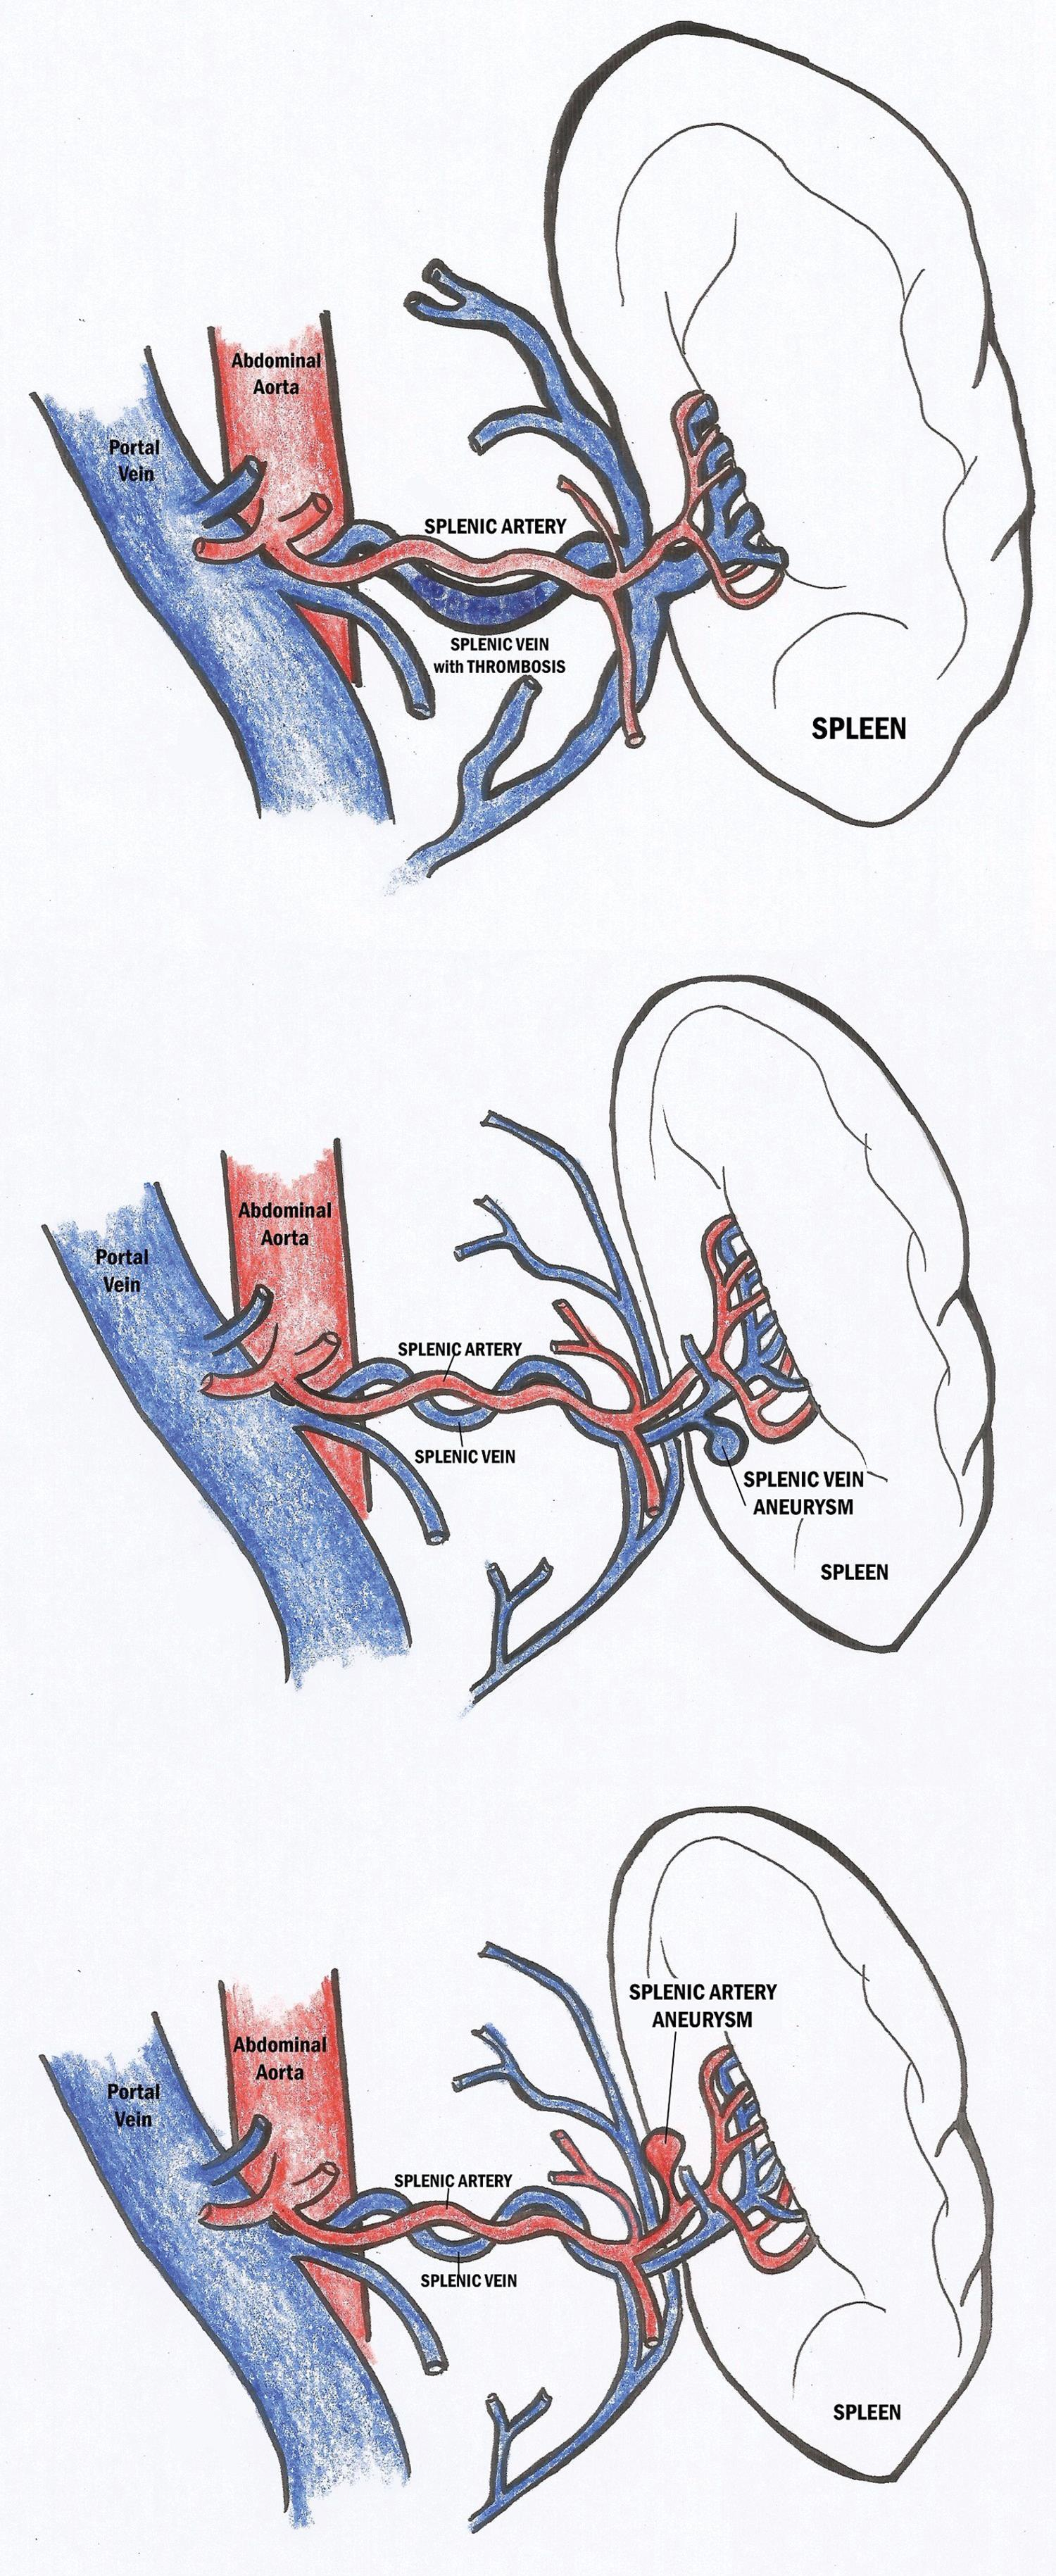 Schematic diagrams of a splenic vein thrombosis with associated splenomegaly (topmost image), splenic vein aneurysm (center image), and a splenic artery aneurysm (bottom image).